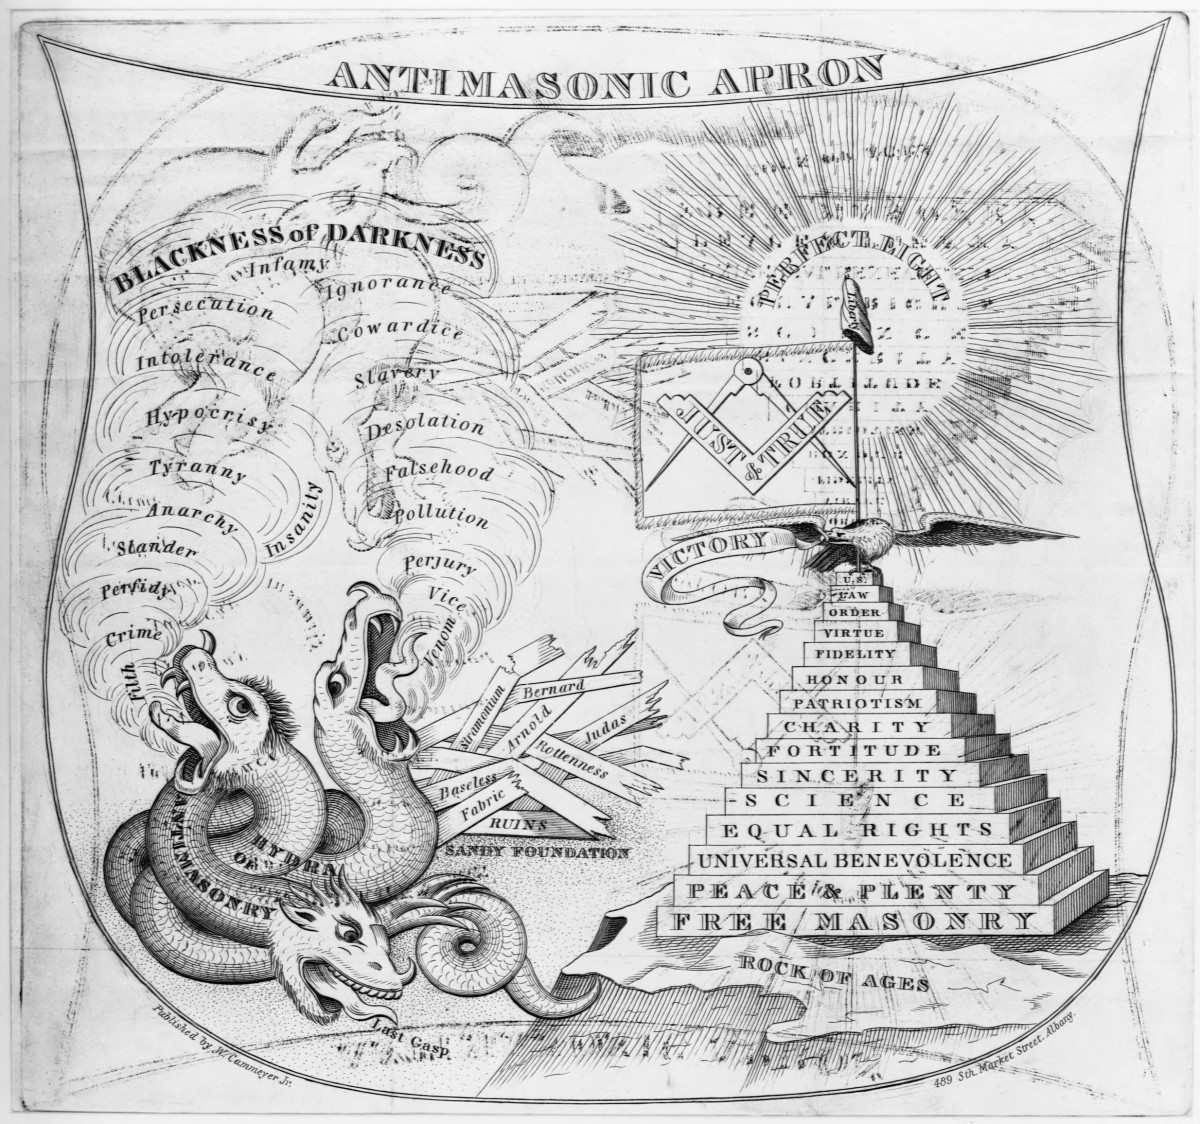 "An attack on the Anti-masonic party produced shortly after their September national convention. It symbolically contrasts the Freemasons, as aligned with peace, equal rights, and other positive qualitie, and the Anti-masonic party aligned with ""darkness."""